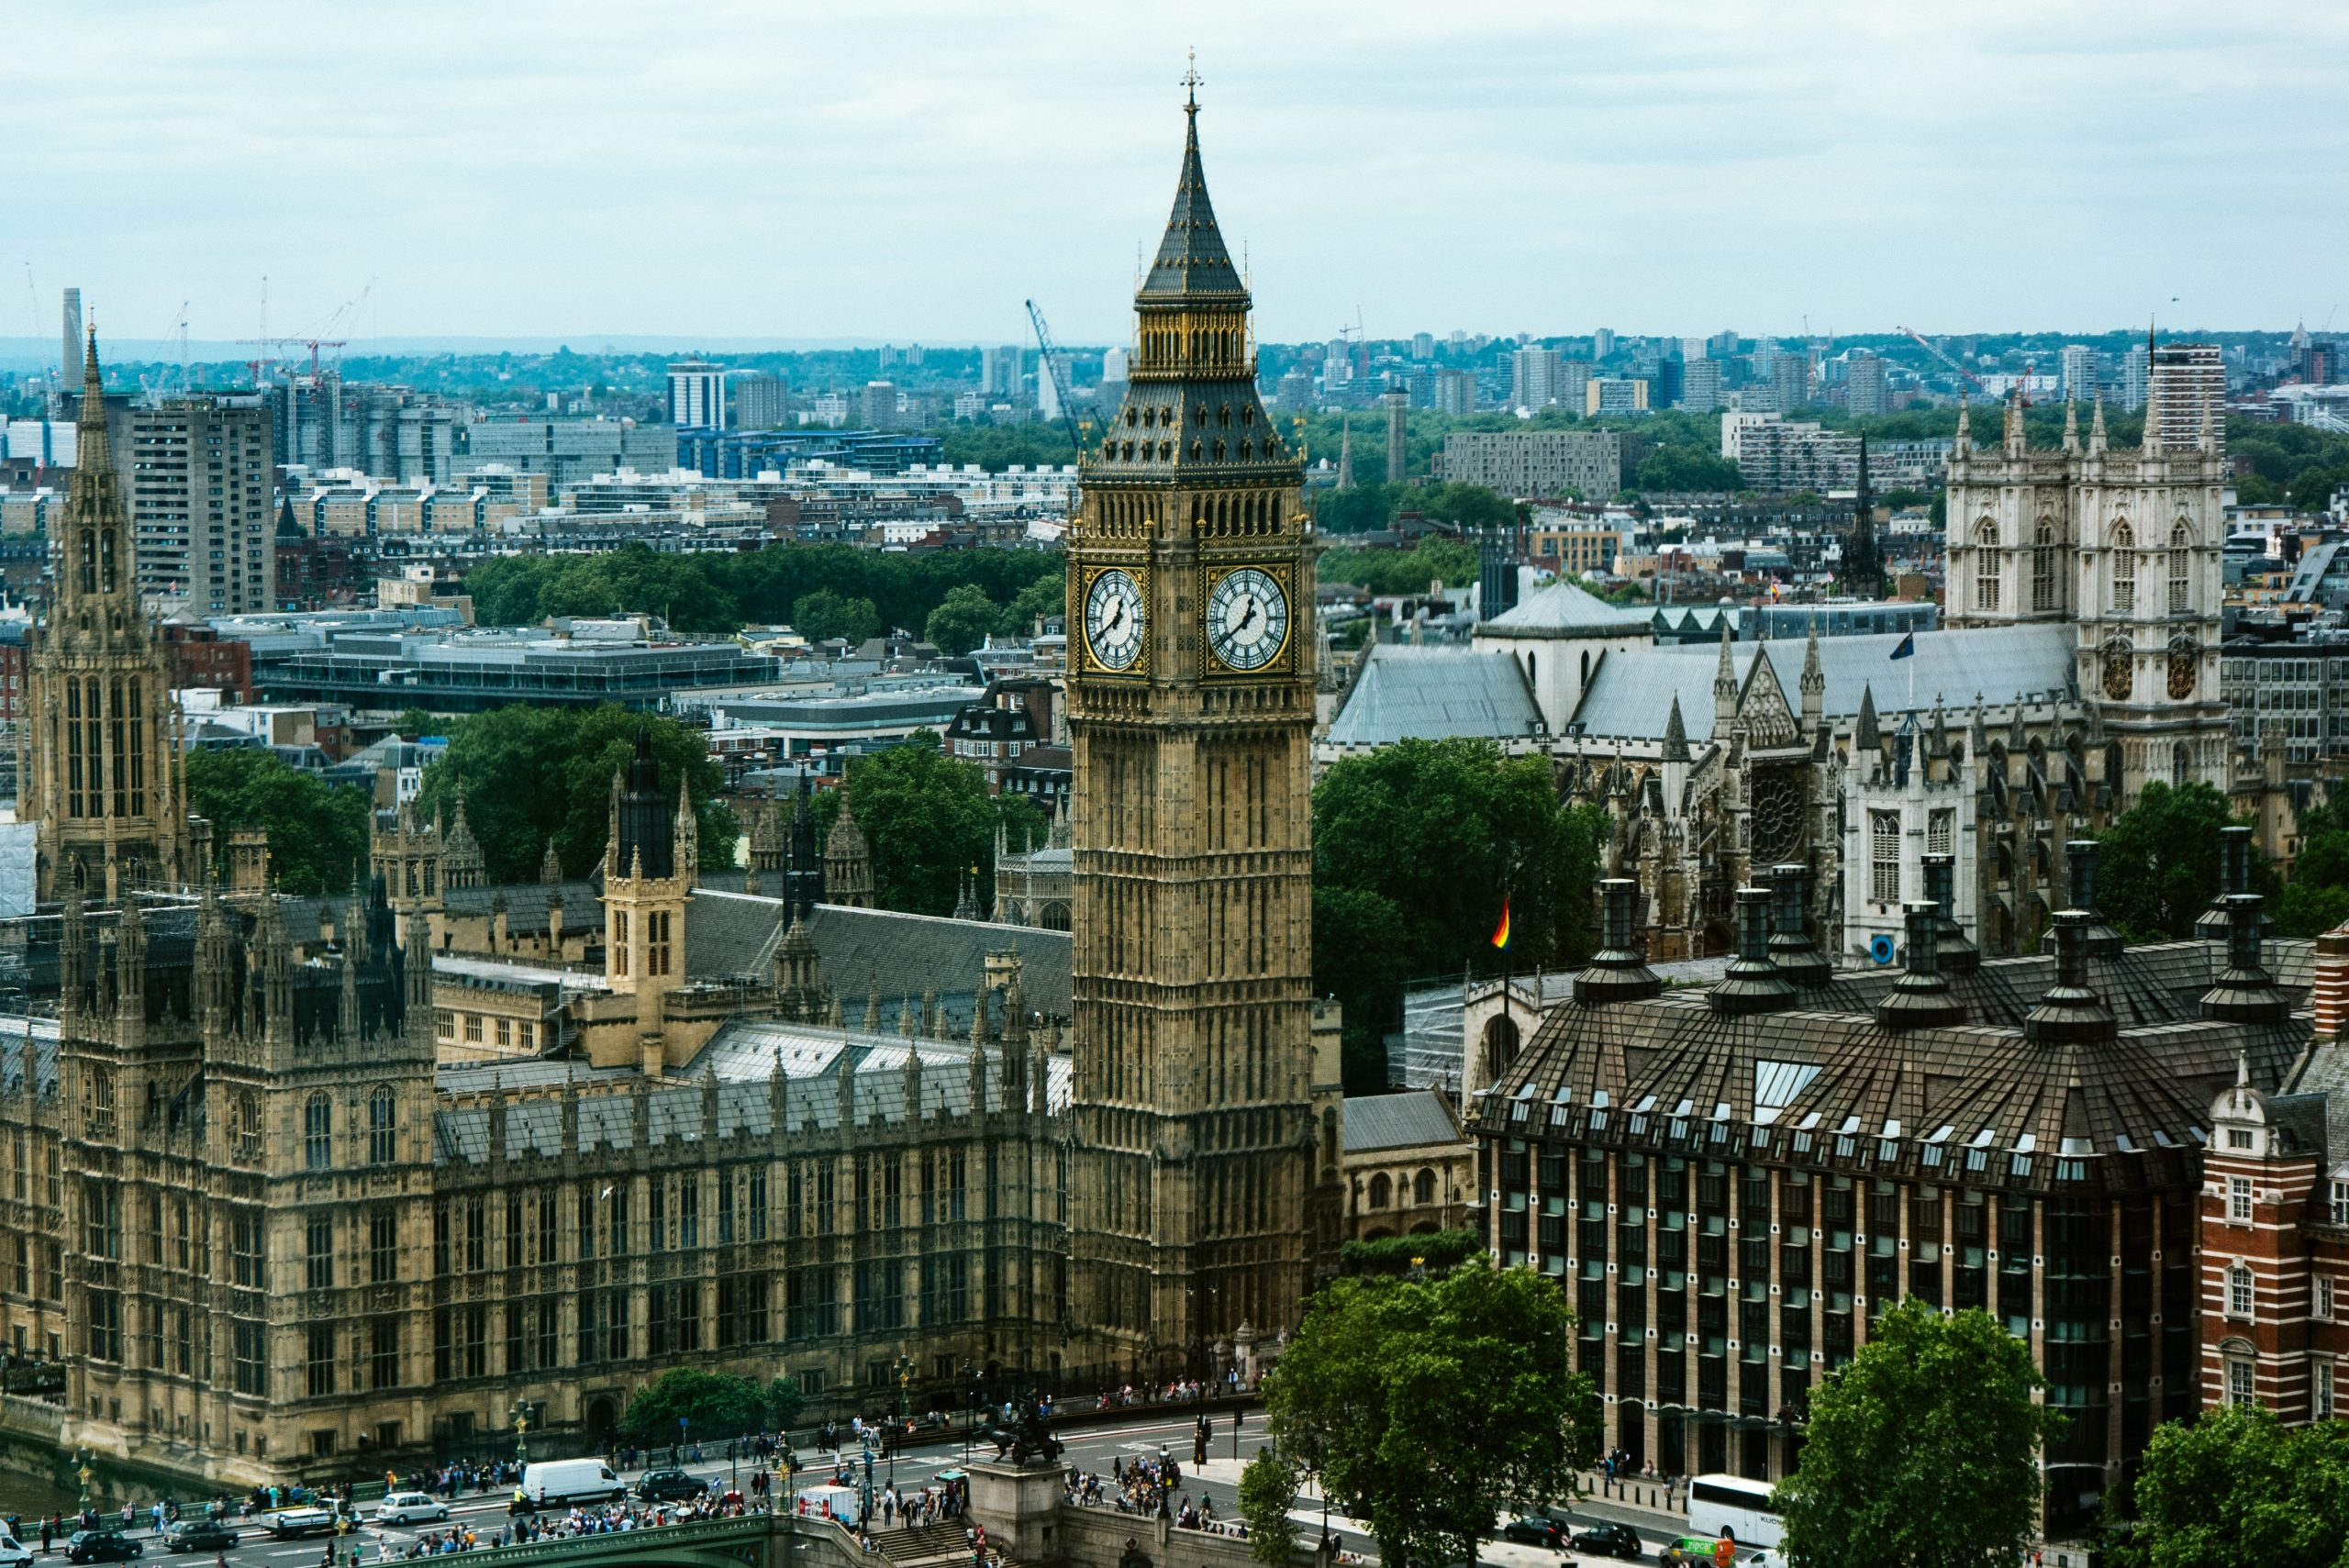 A wide shot of the house of parliament and big ben